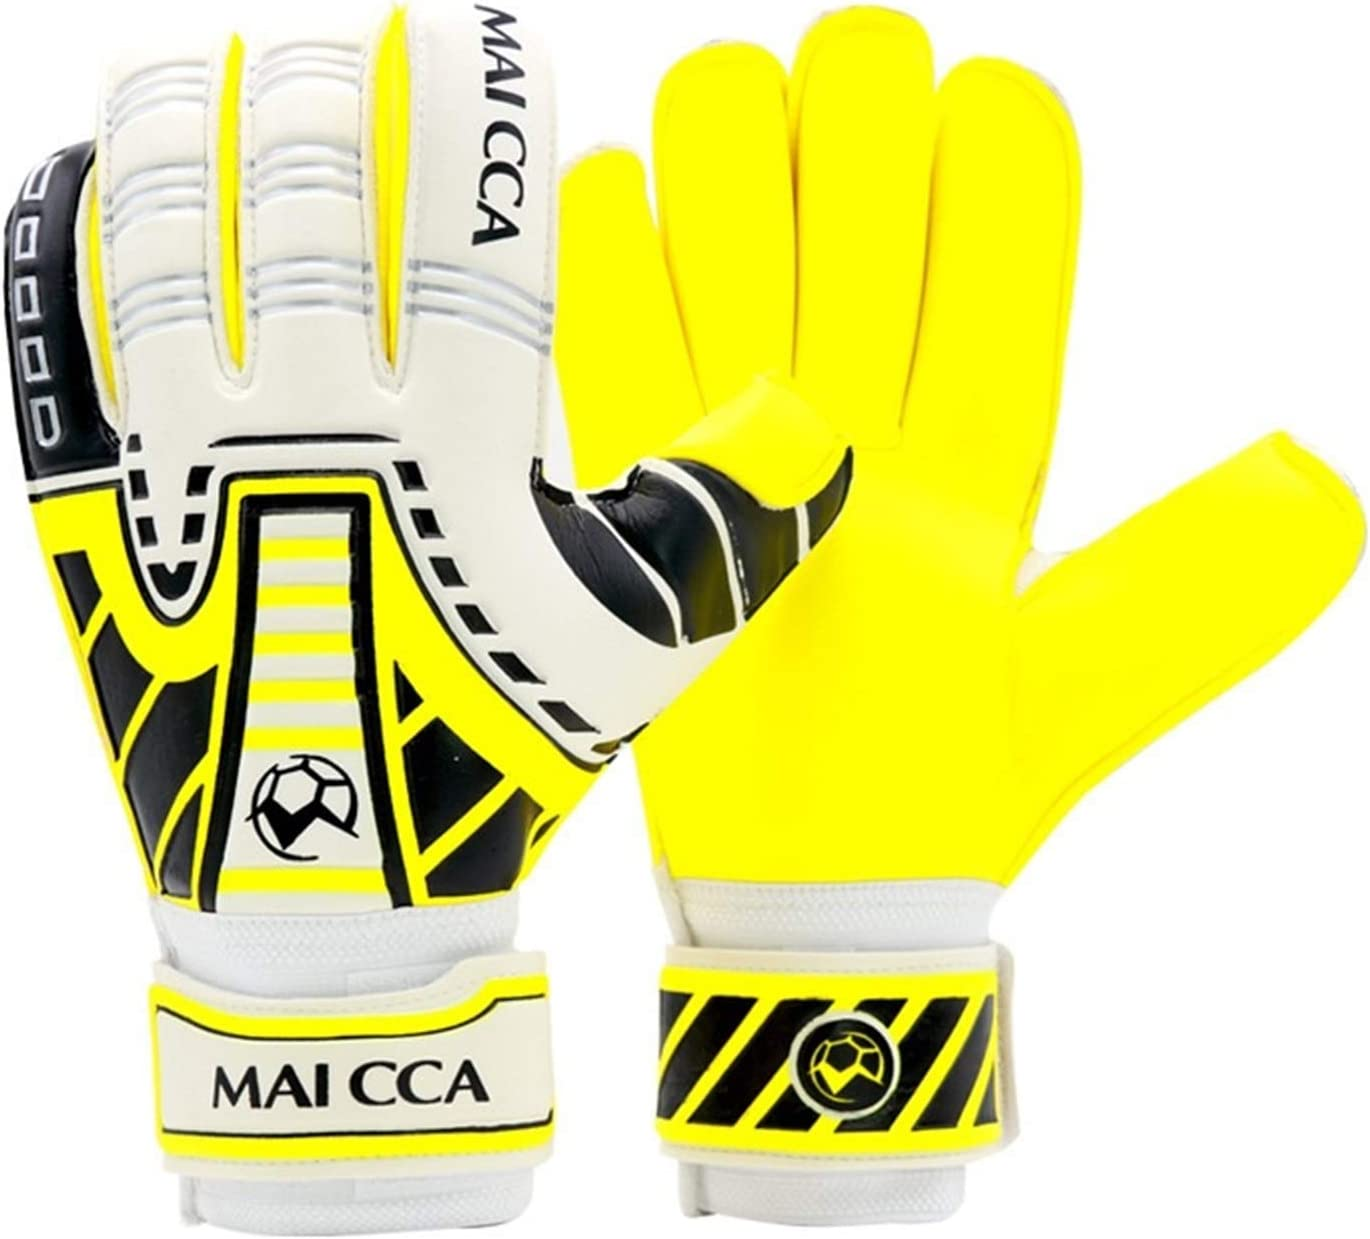 ZHIZI Challenge the lowest price of Japan Fashionable Goalkeeper Gloves Foot Yellow Two-Piece